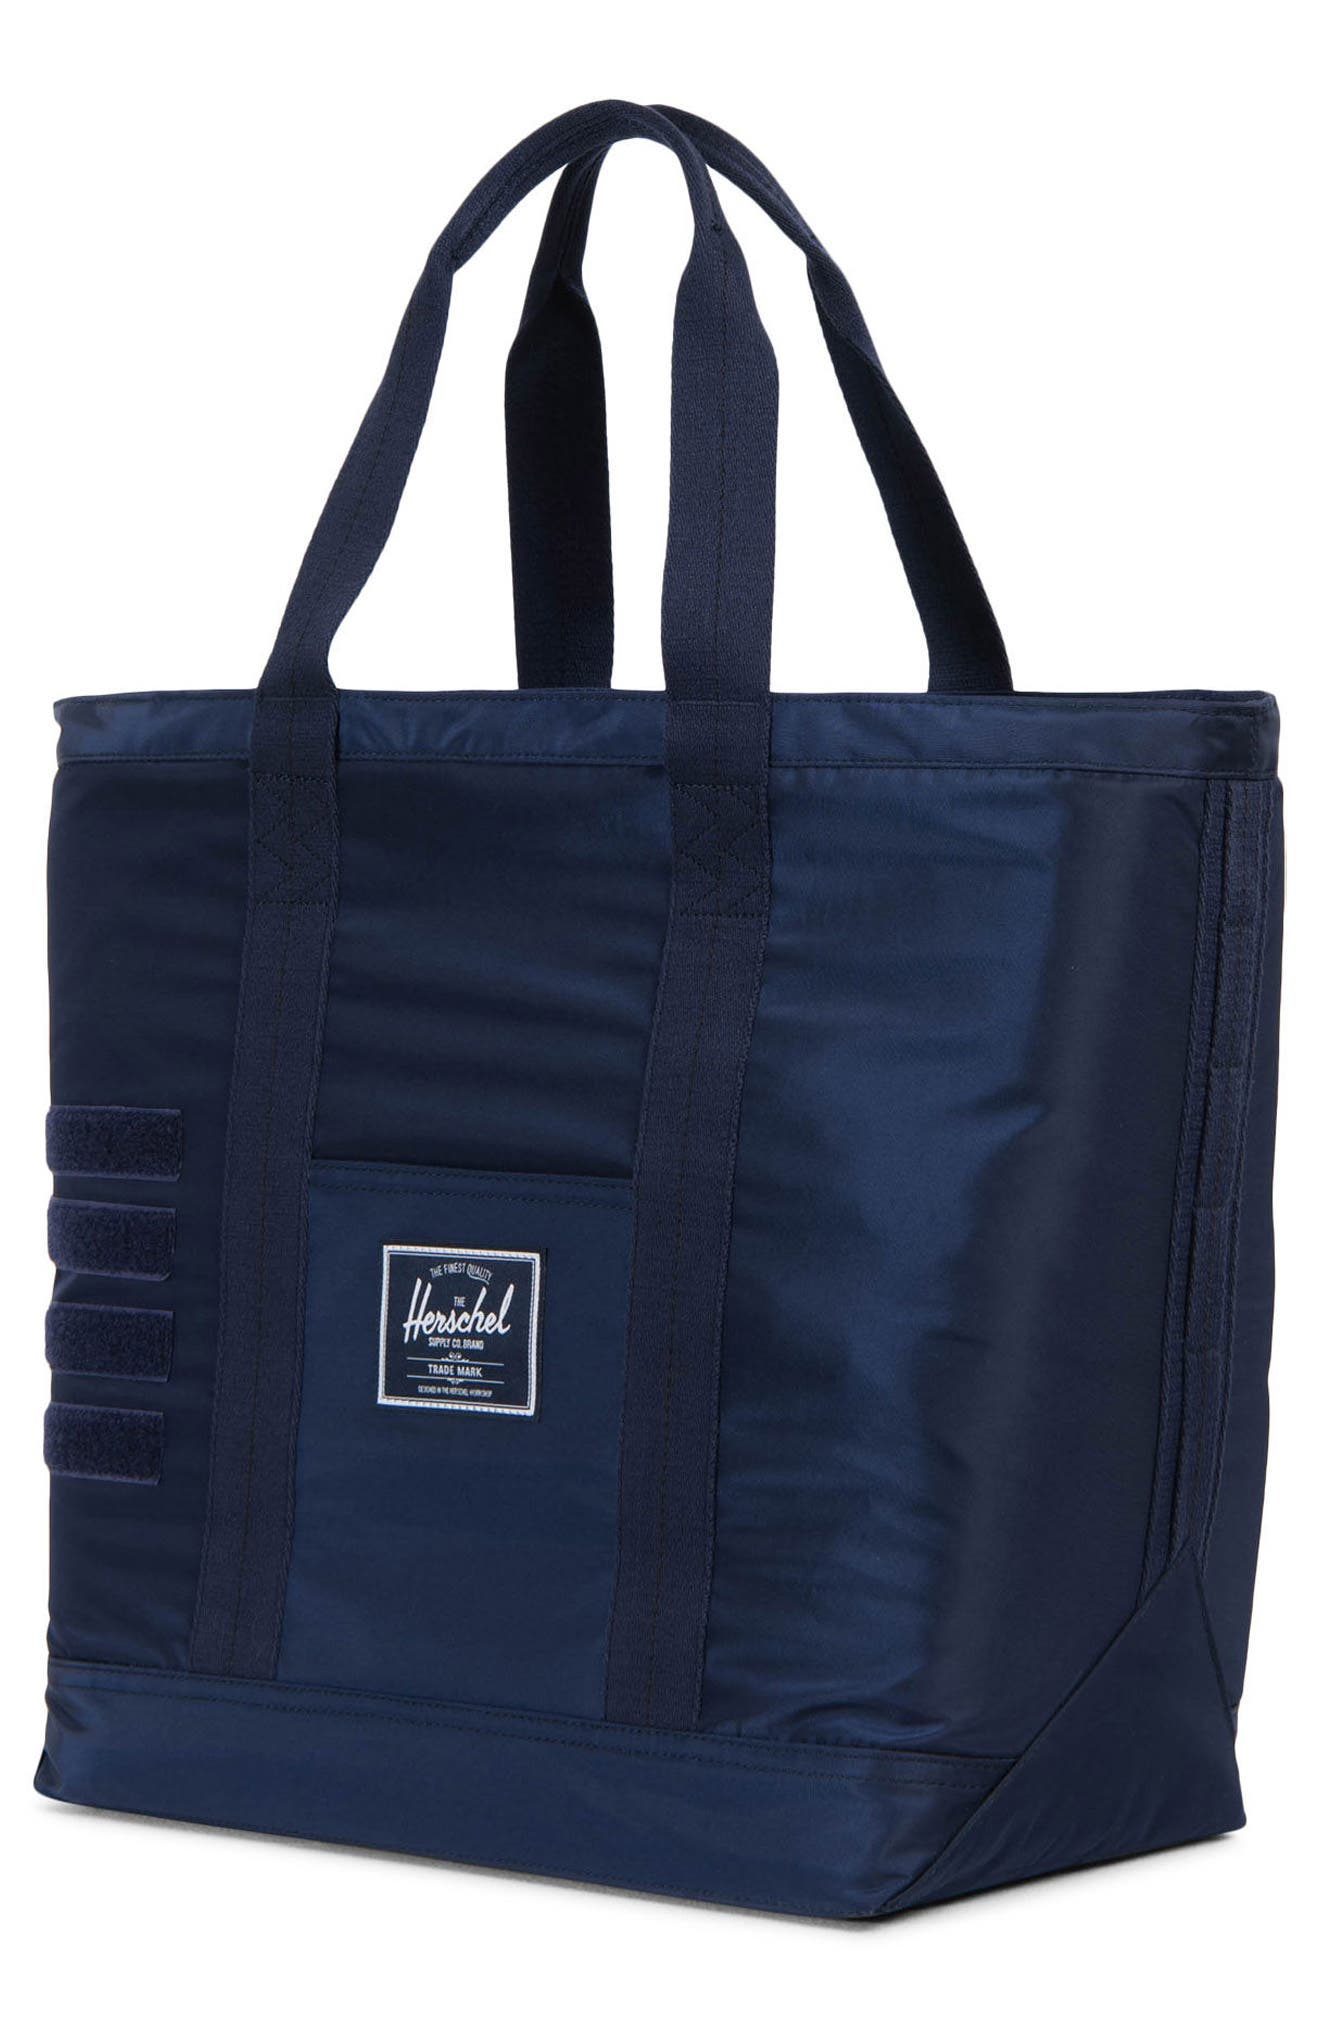 Alternate Image 2  - Herschel Supply Co. Bamfield Surplus Collection Tote Bag